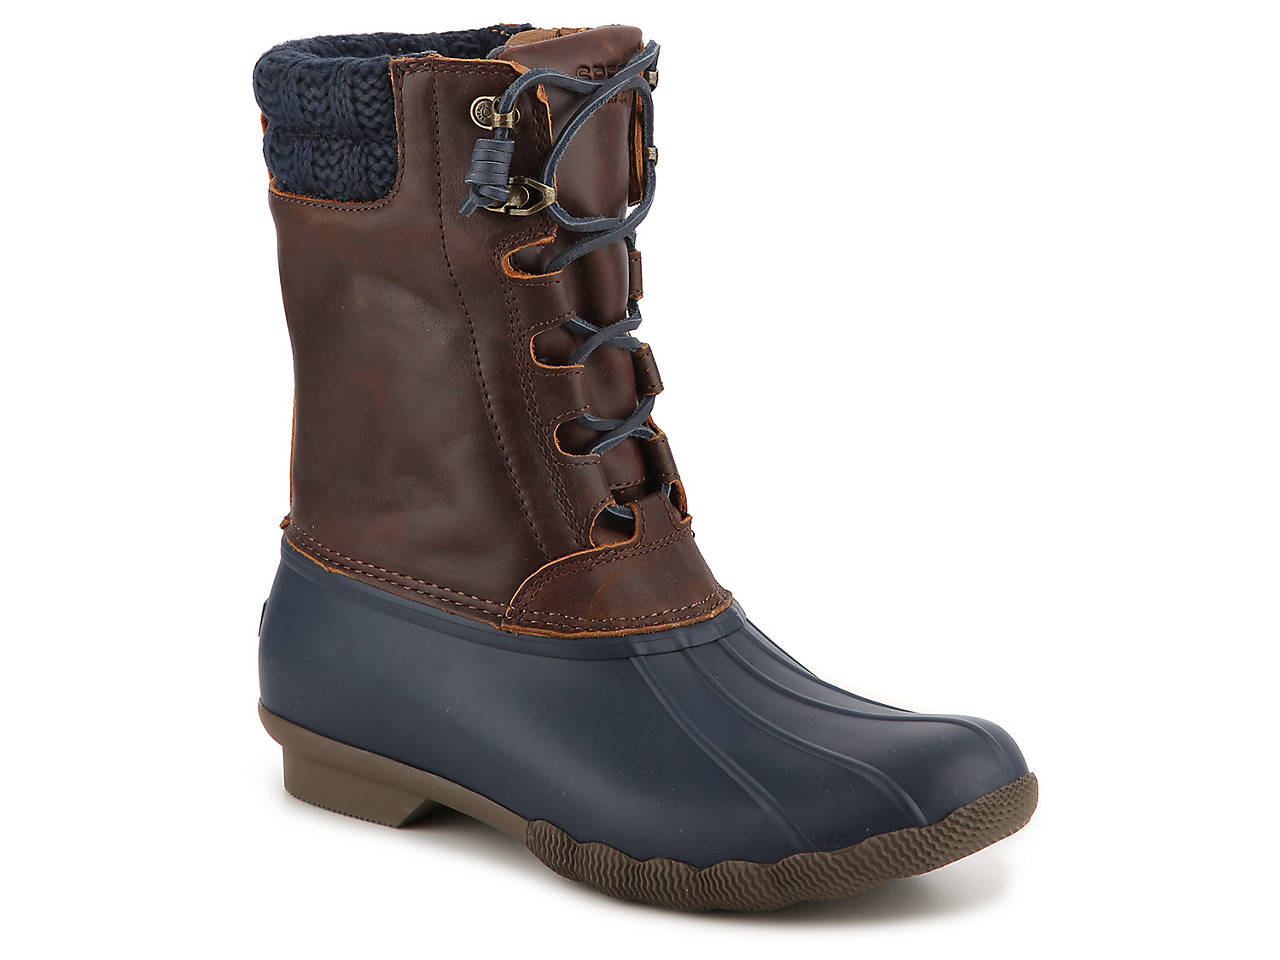 a015e191c99c Sperry Top-Sider Saltwater Misty Duck Boot Women s Shoes